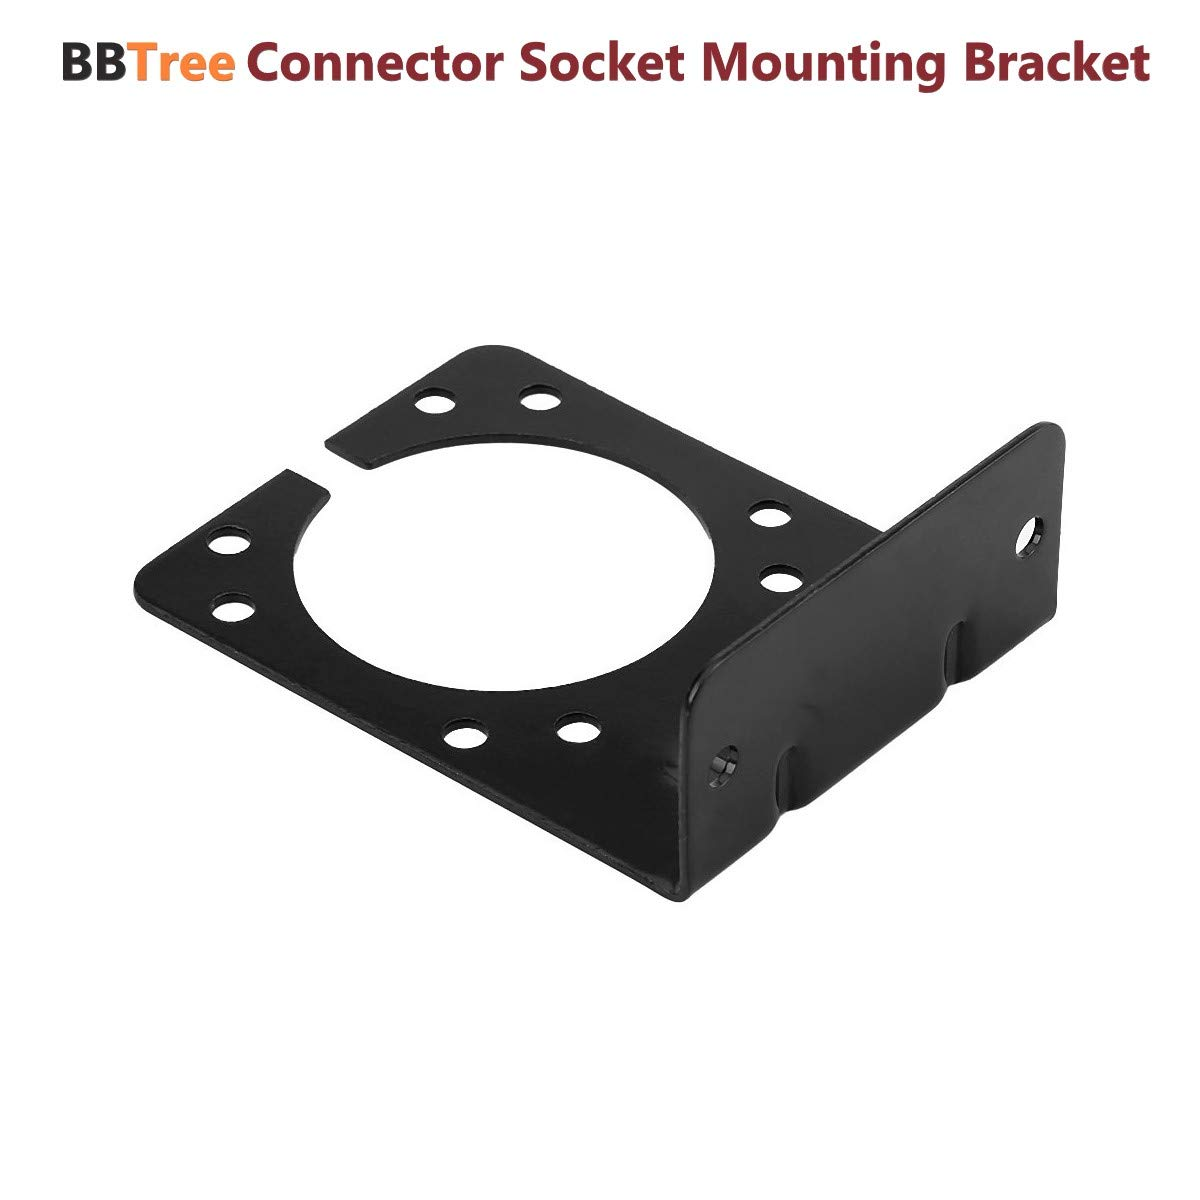 BBTree Connector Socket Mounting Bracket Right Angle Plug Socket Bracket for 7-Way Caravan Towing Trailer Connector T/&M